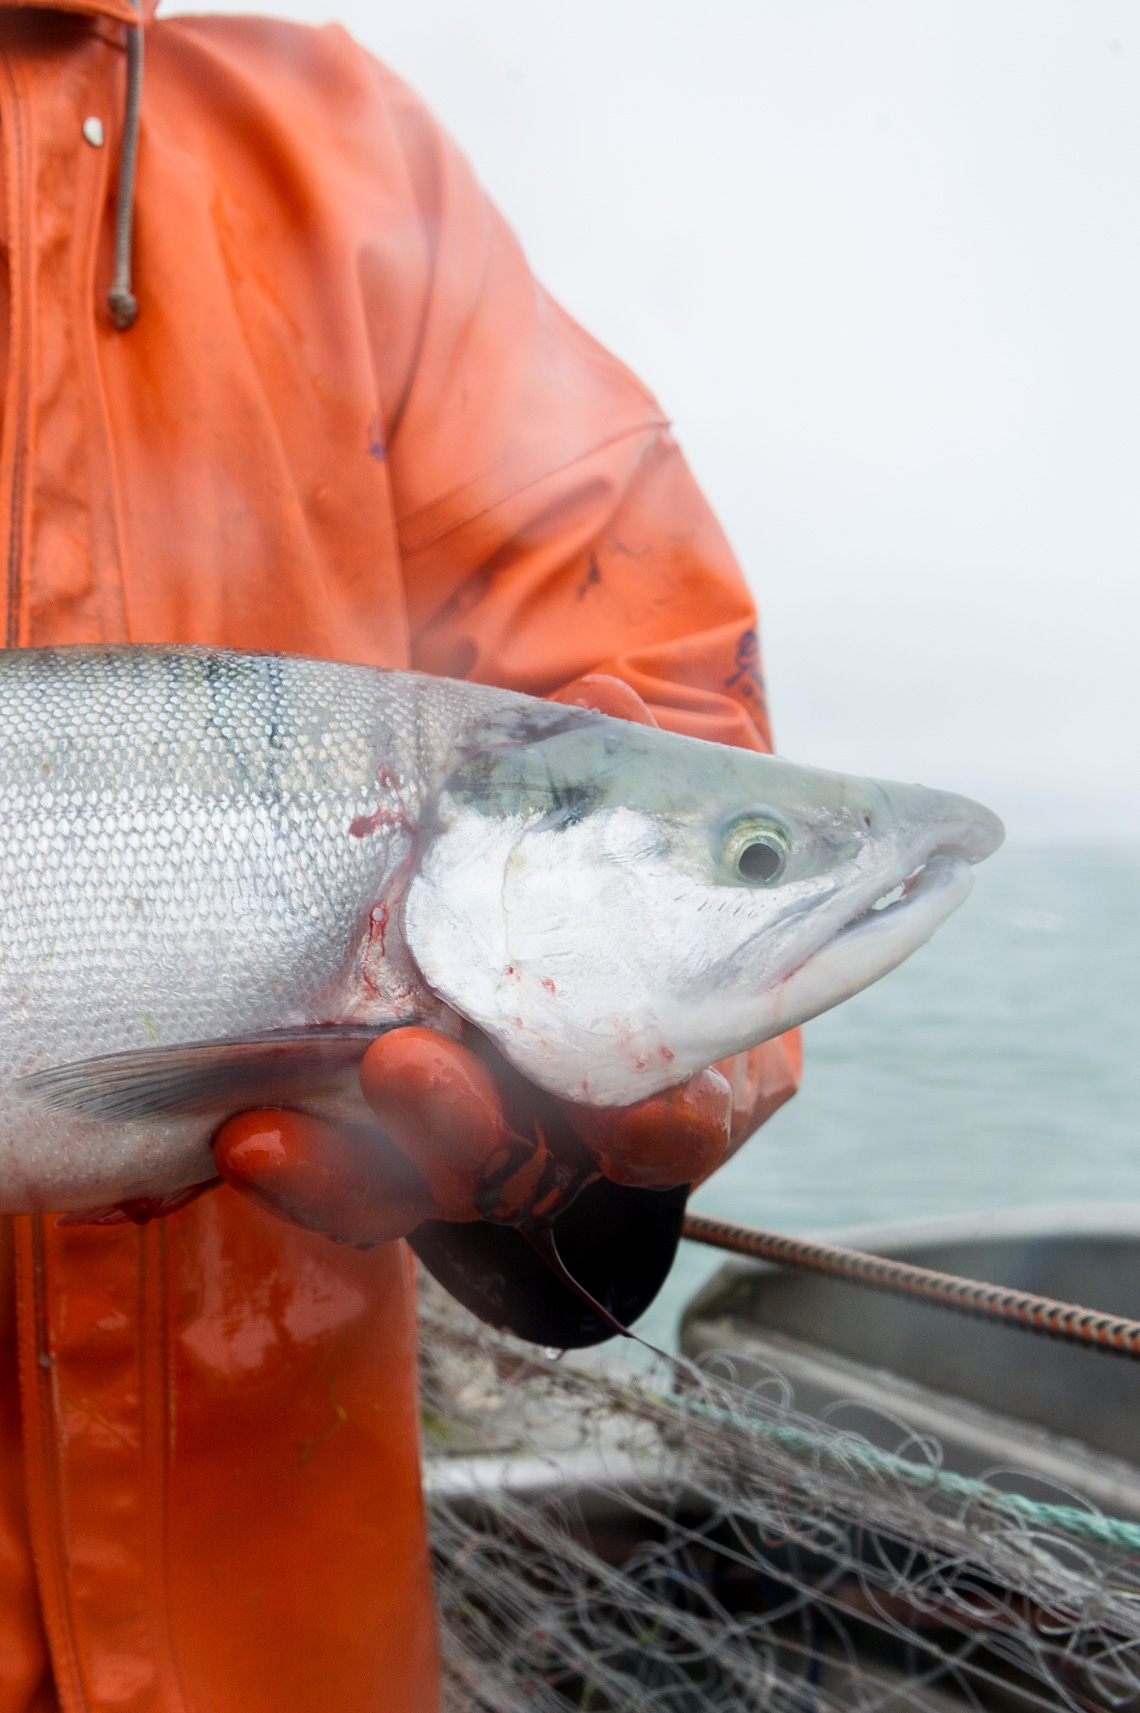 NYC Travel Photographer - Alaska Salmon Fishing